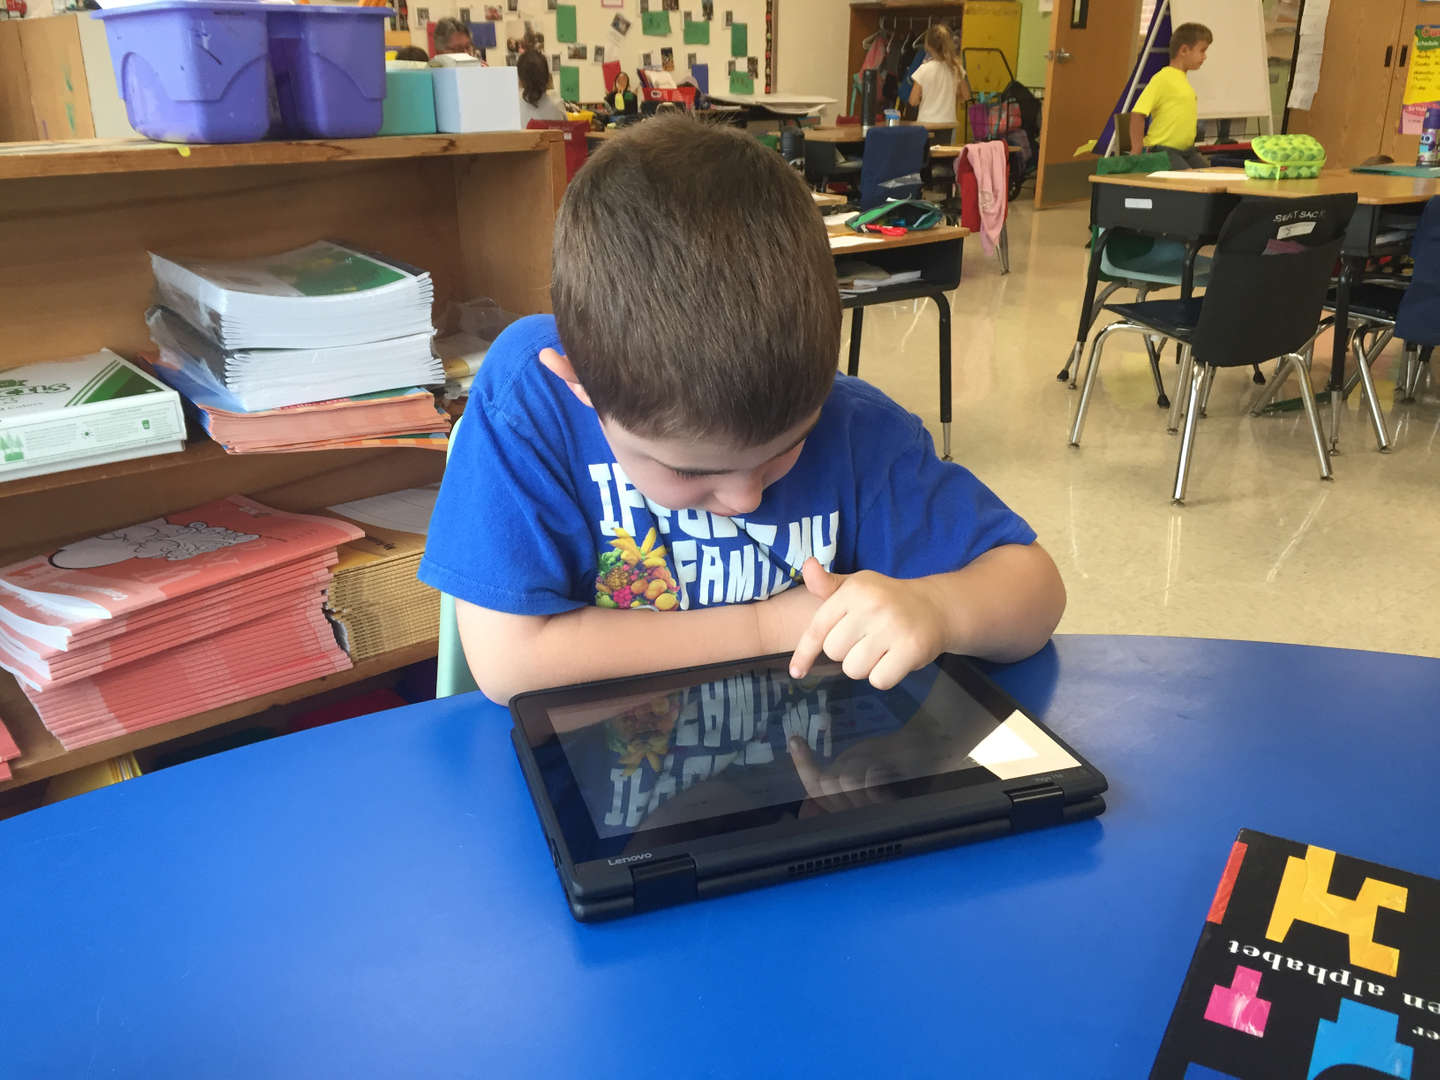 student working on a math problem on an iPad